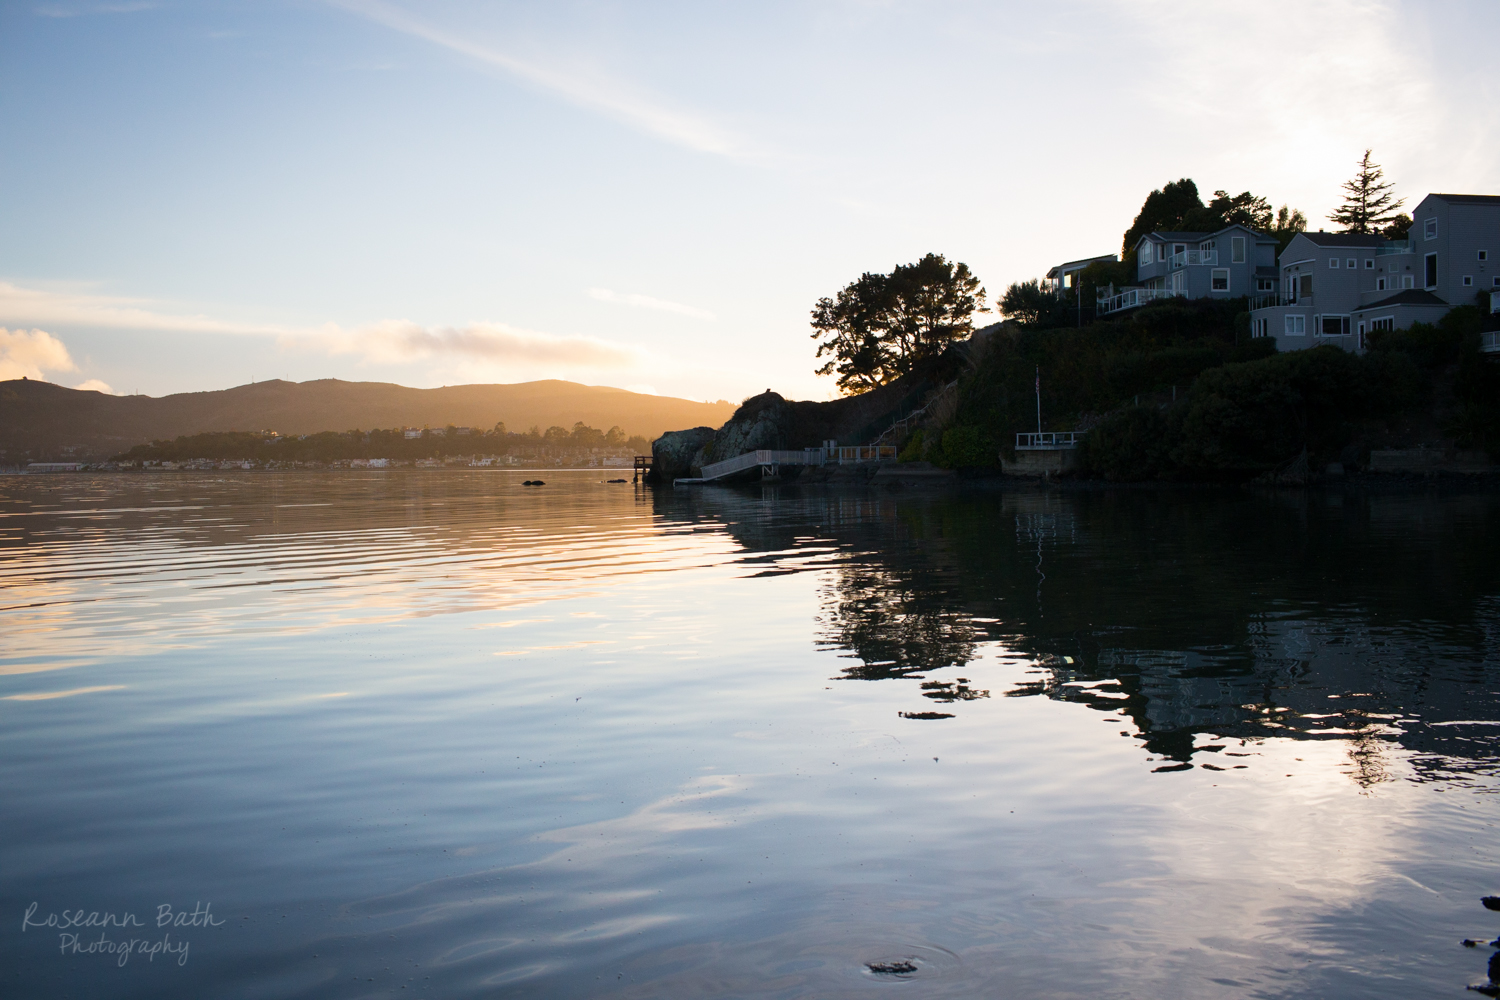 Tiburon | Roseann Bath Photography